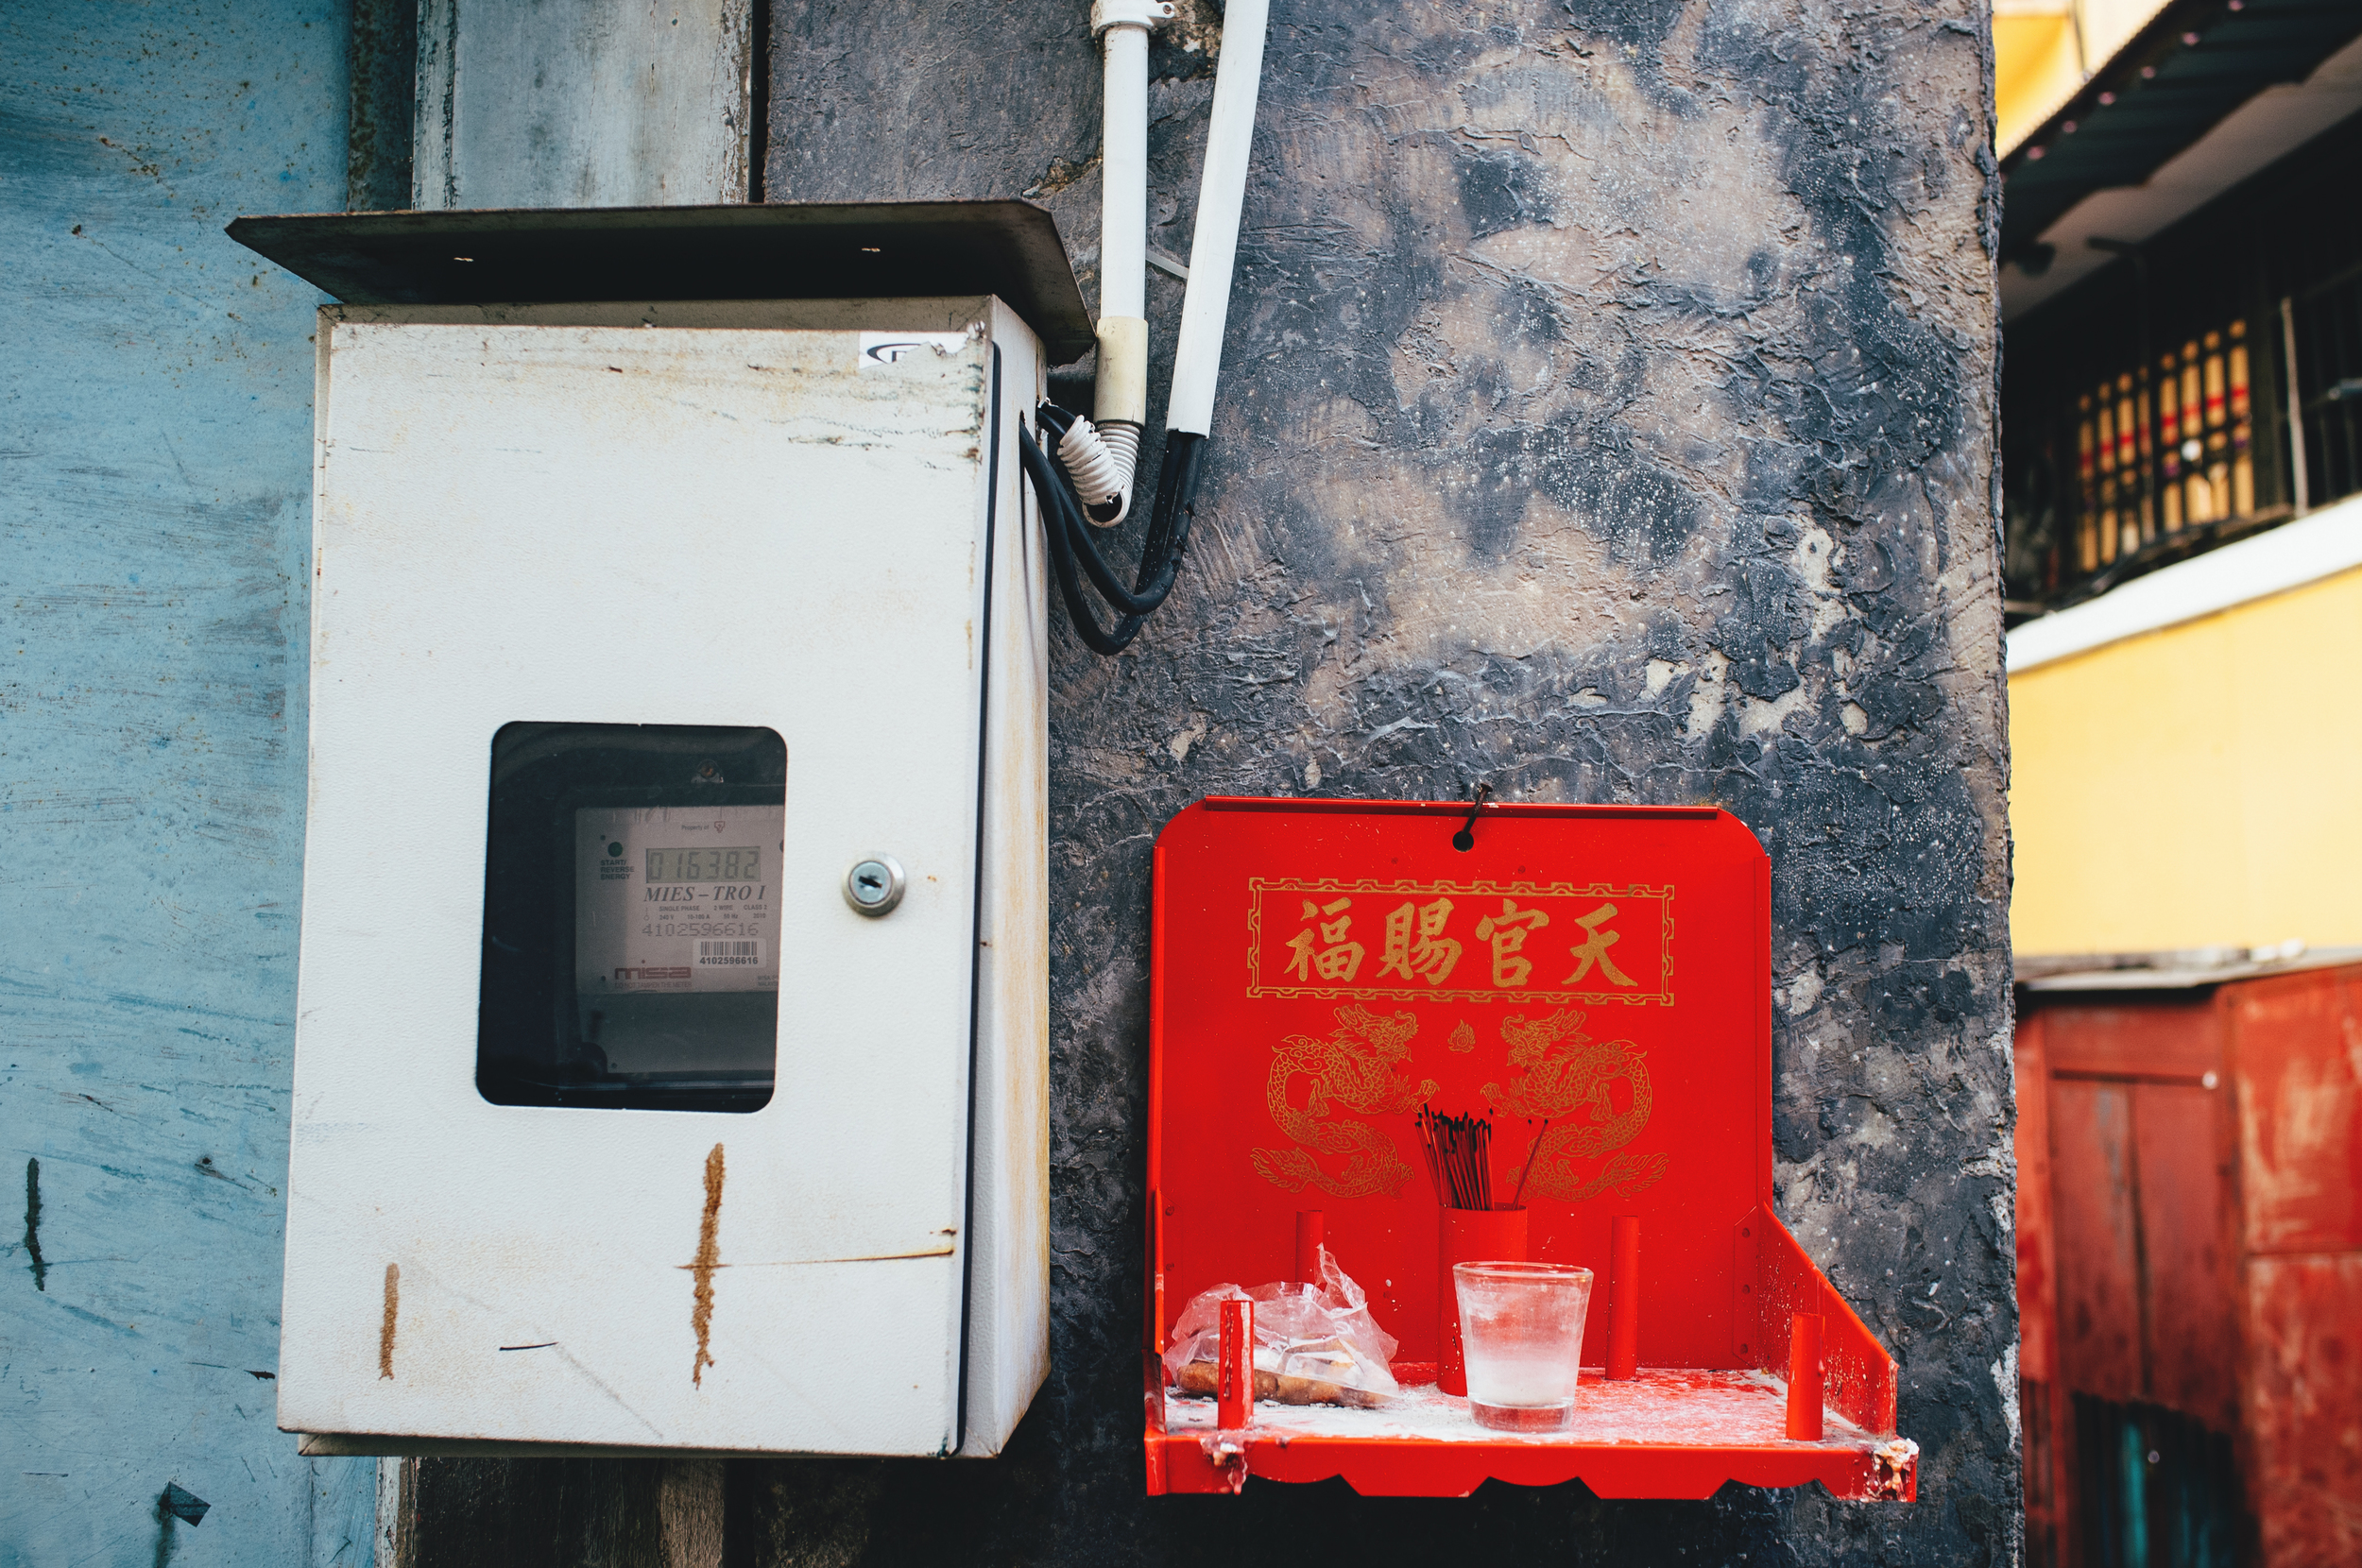 A tiny shrine in an alley. Such things were not uncommon.